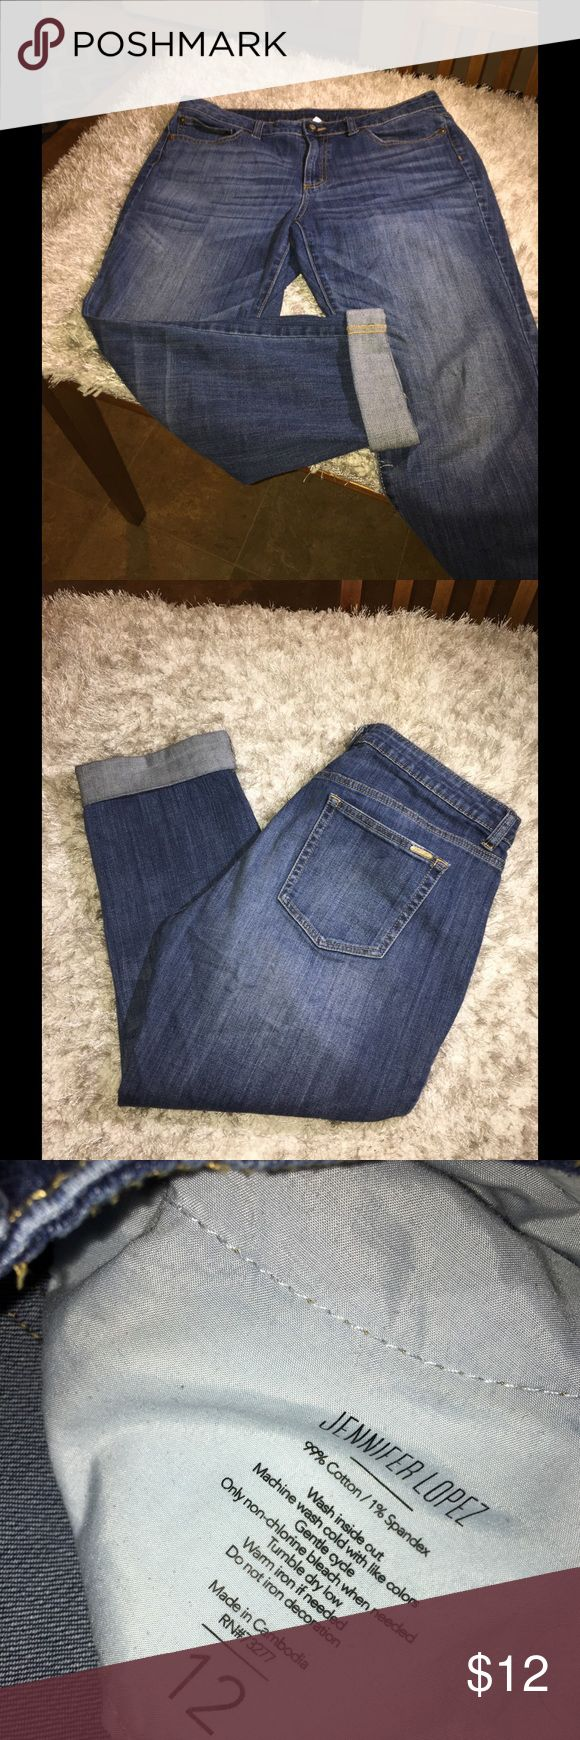 Jennifer Lopez Boyfriend Ankle Jeans Size 12 Ankle length Boyfriend jeans.  Jennifer Lopez.  Medium blue rinse color.  Inseam is 24 inches.  Size 12. Good condition.  Important:   All items are freshly laundered as applicable prior to shipping (new items and shoes excluded).  Not all my items are from pet/smoke free homes.  Price is reduced to reflect this!   Thank you for looking! Jennifer Lopez Jeans Boyfriend